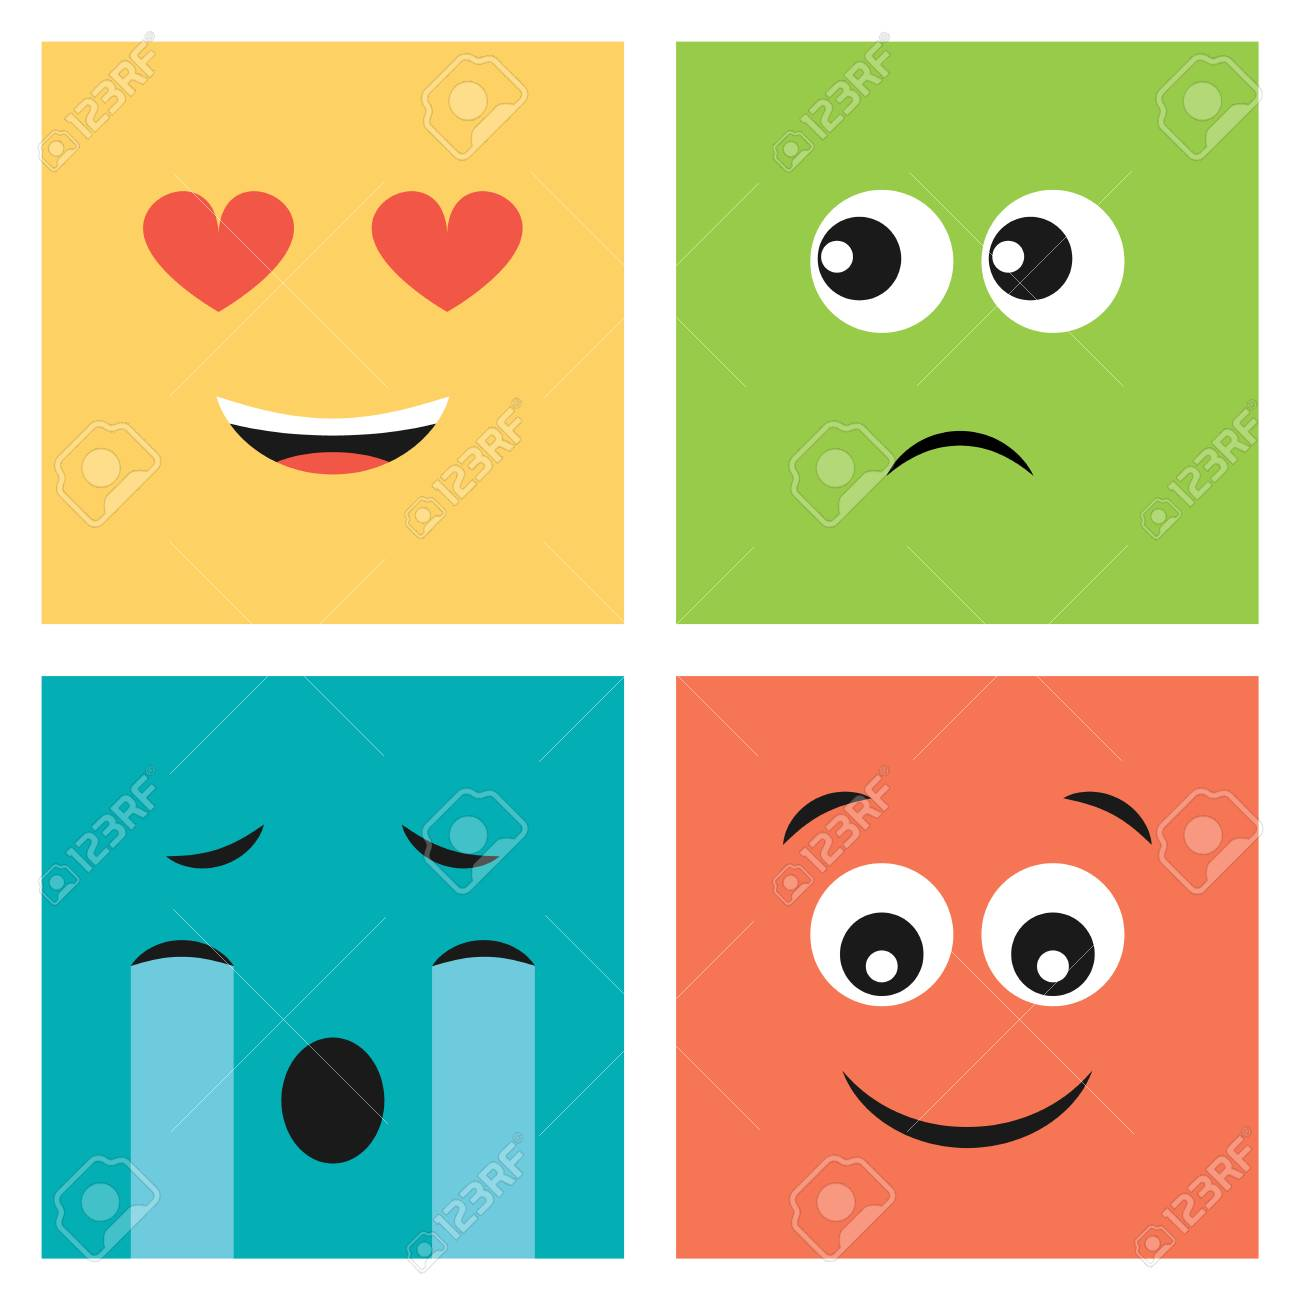 Set of four colorful emoticons with smiling love, surprised